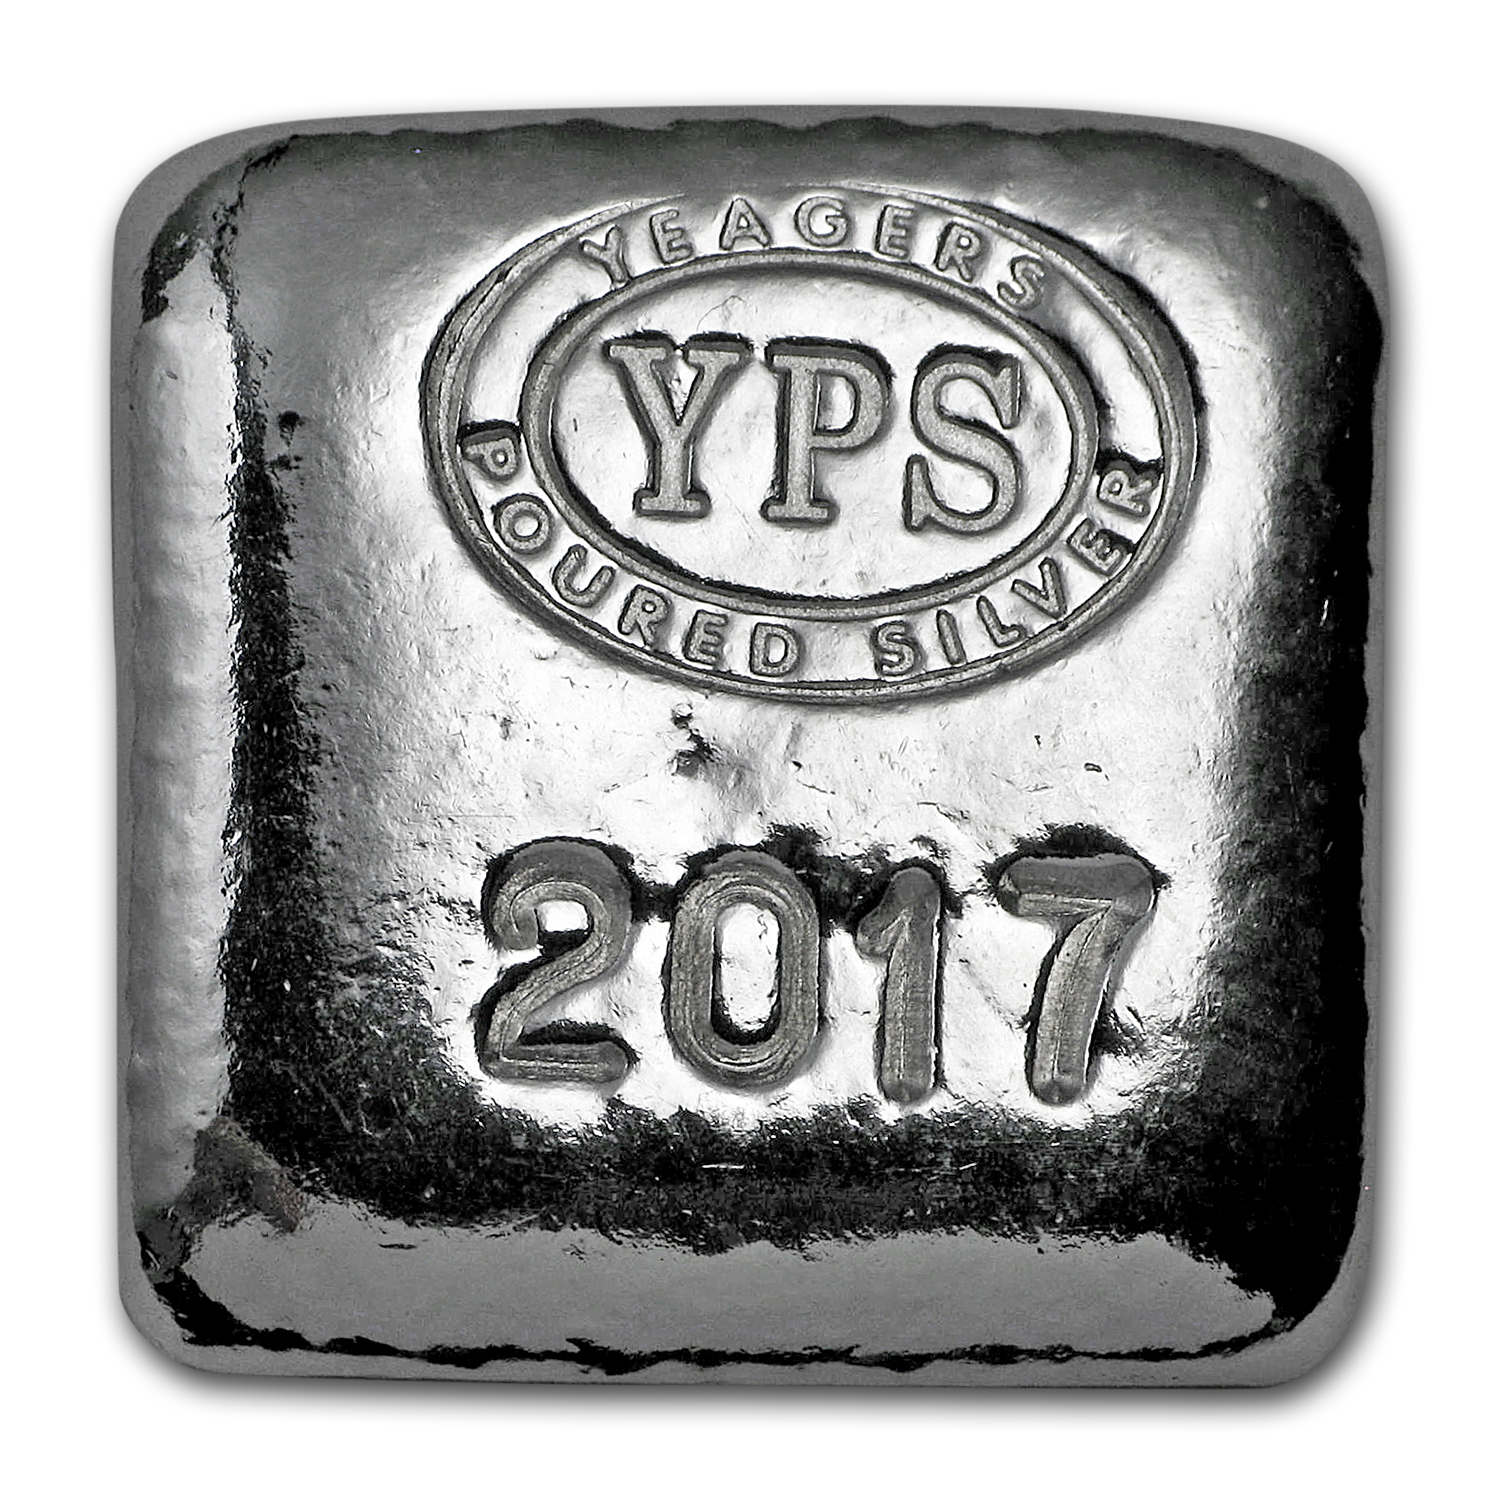 1 oz Silver Square - Yeager Poured Silver (2017 Edition)